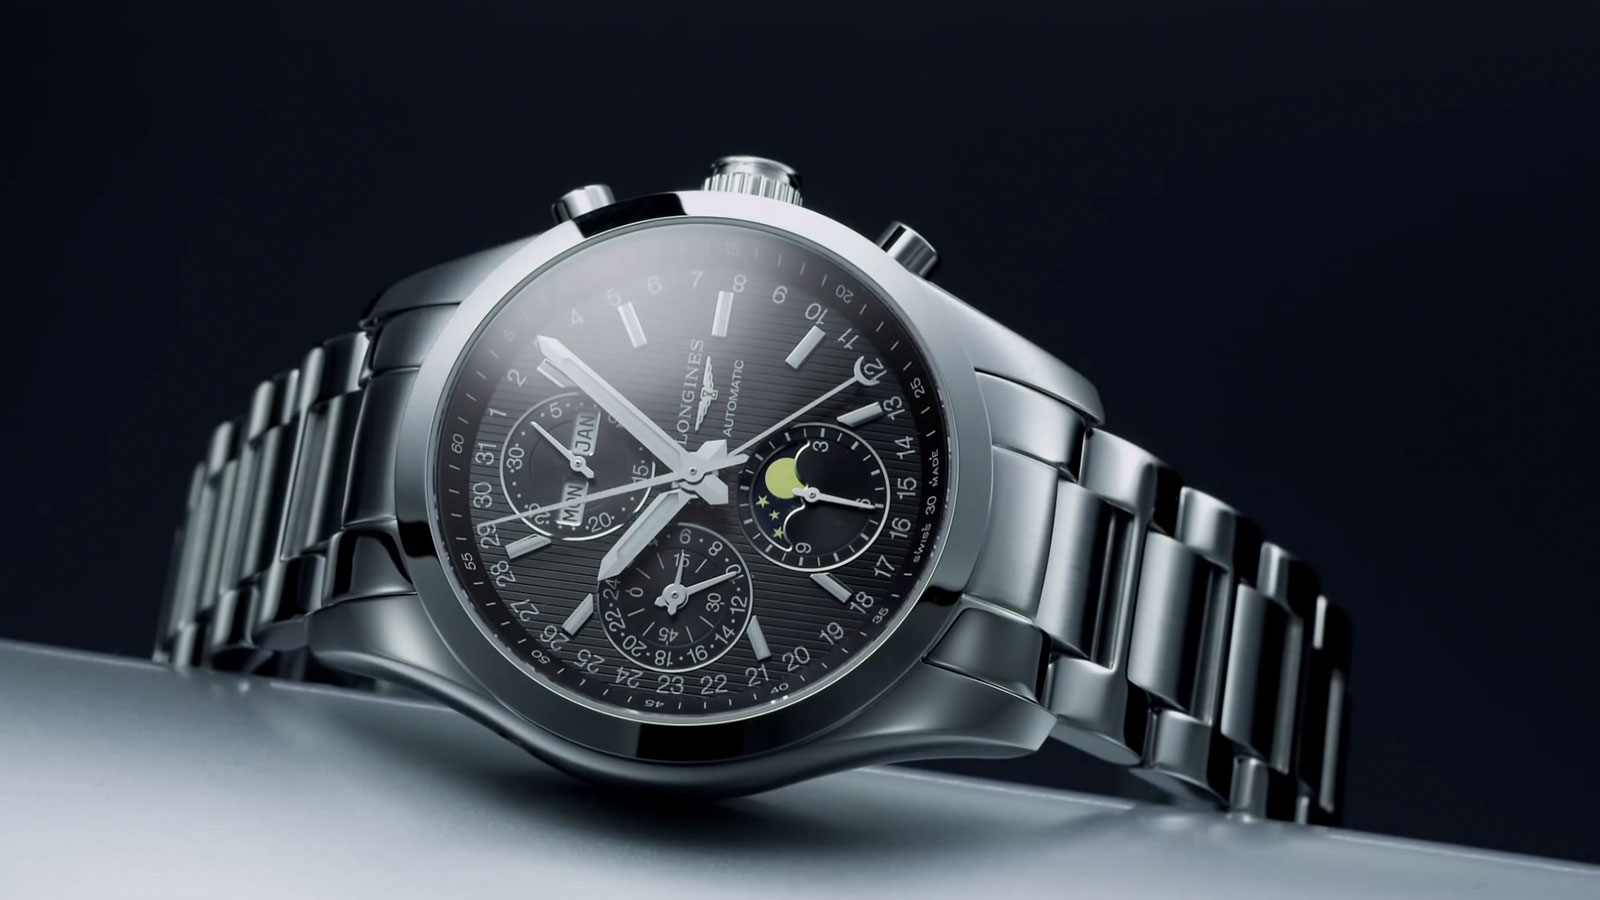 Longines Commercial Before The Belmont Stakes